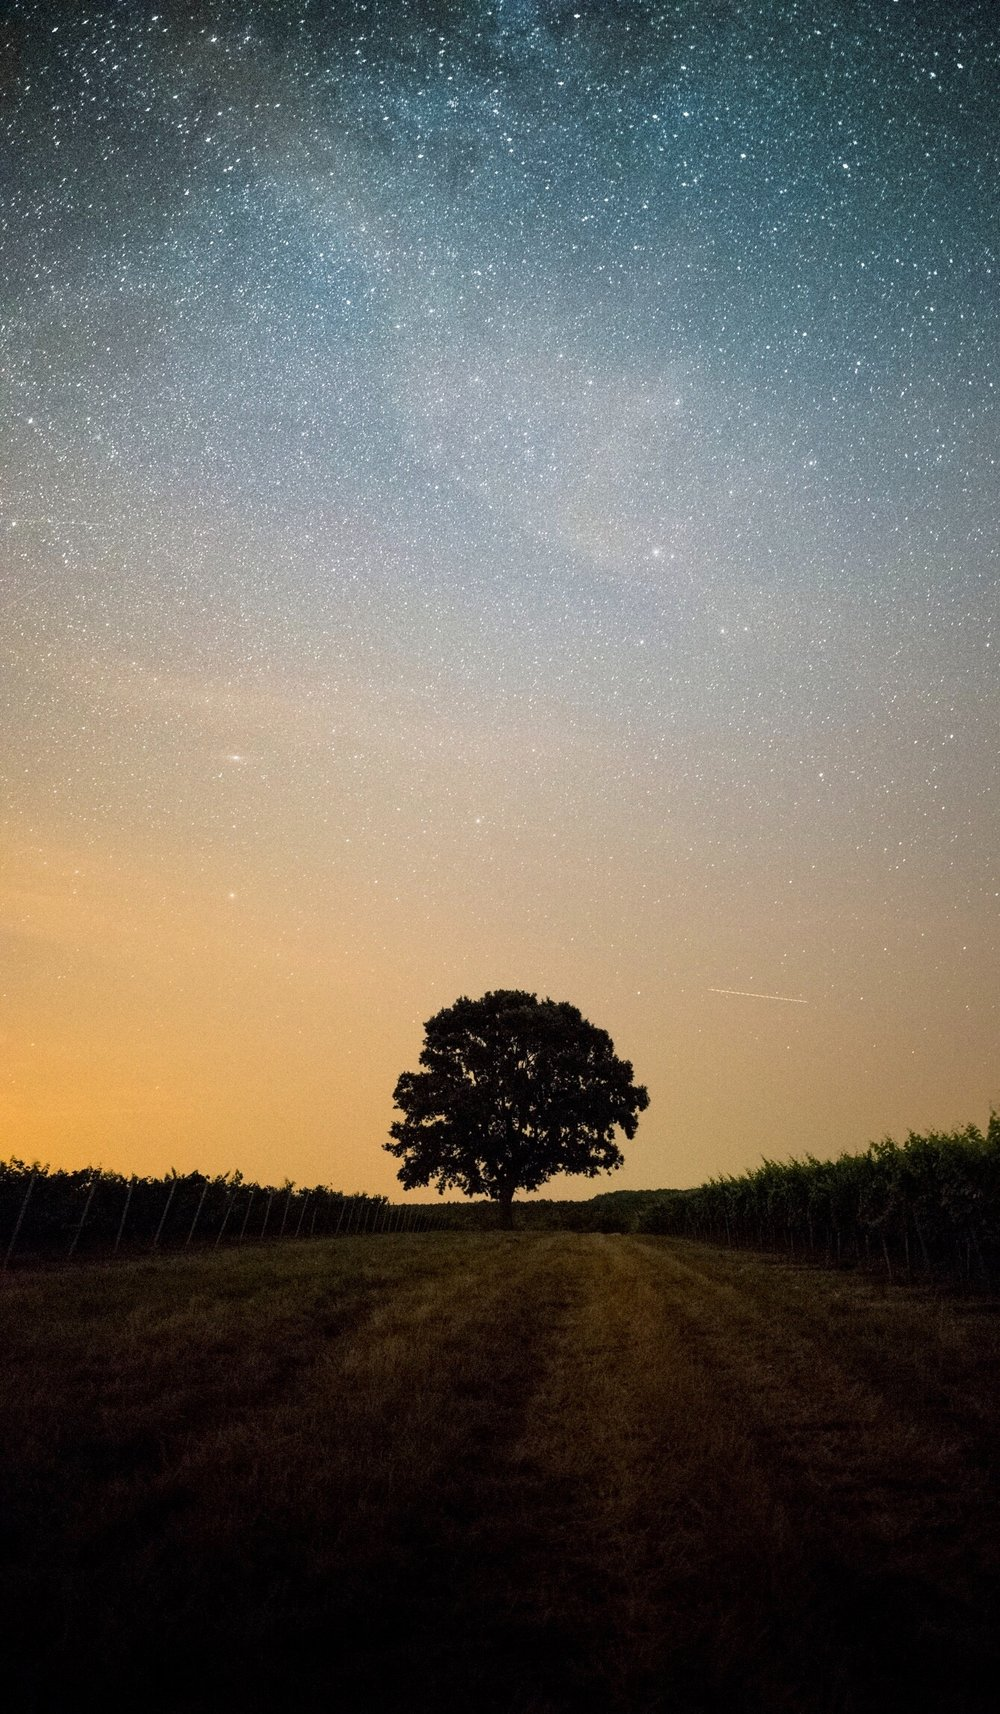 stars-cannot-shine-without-darkness.jpg